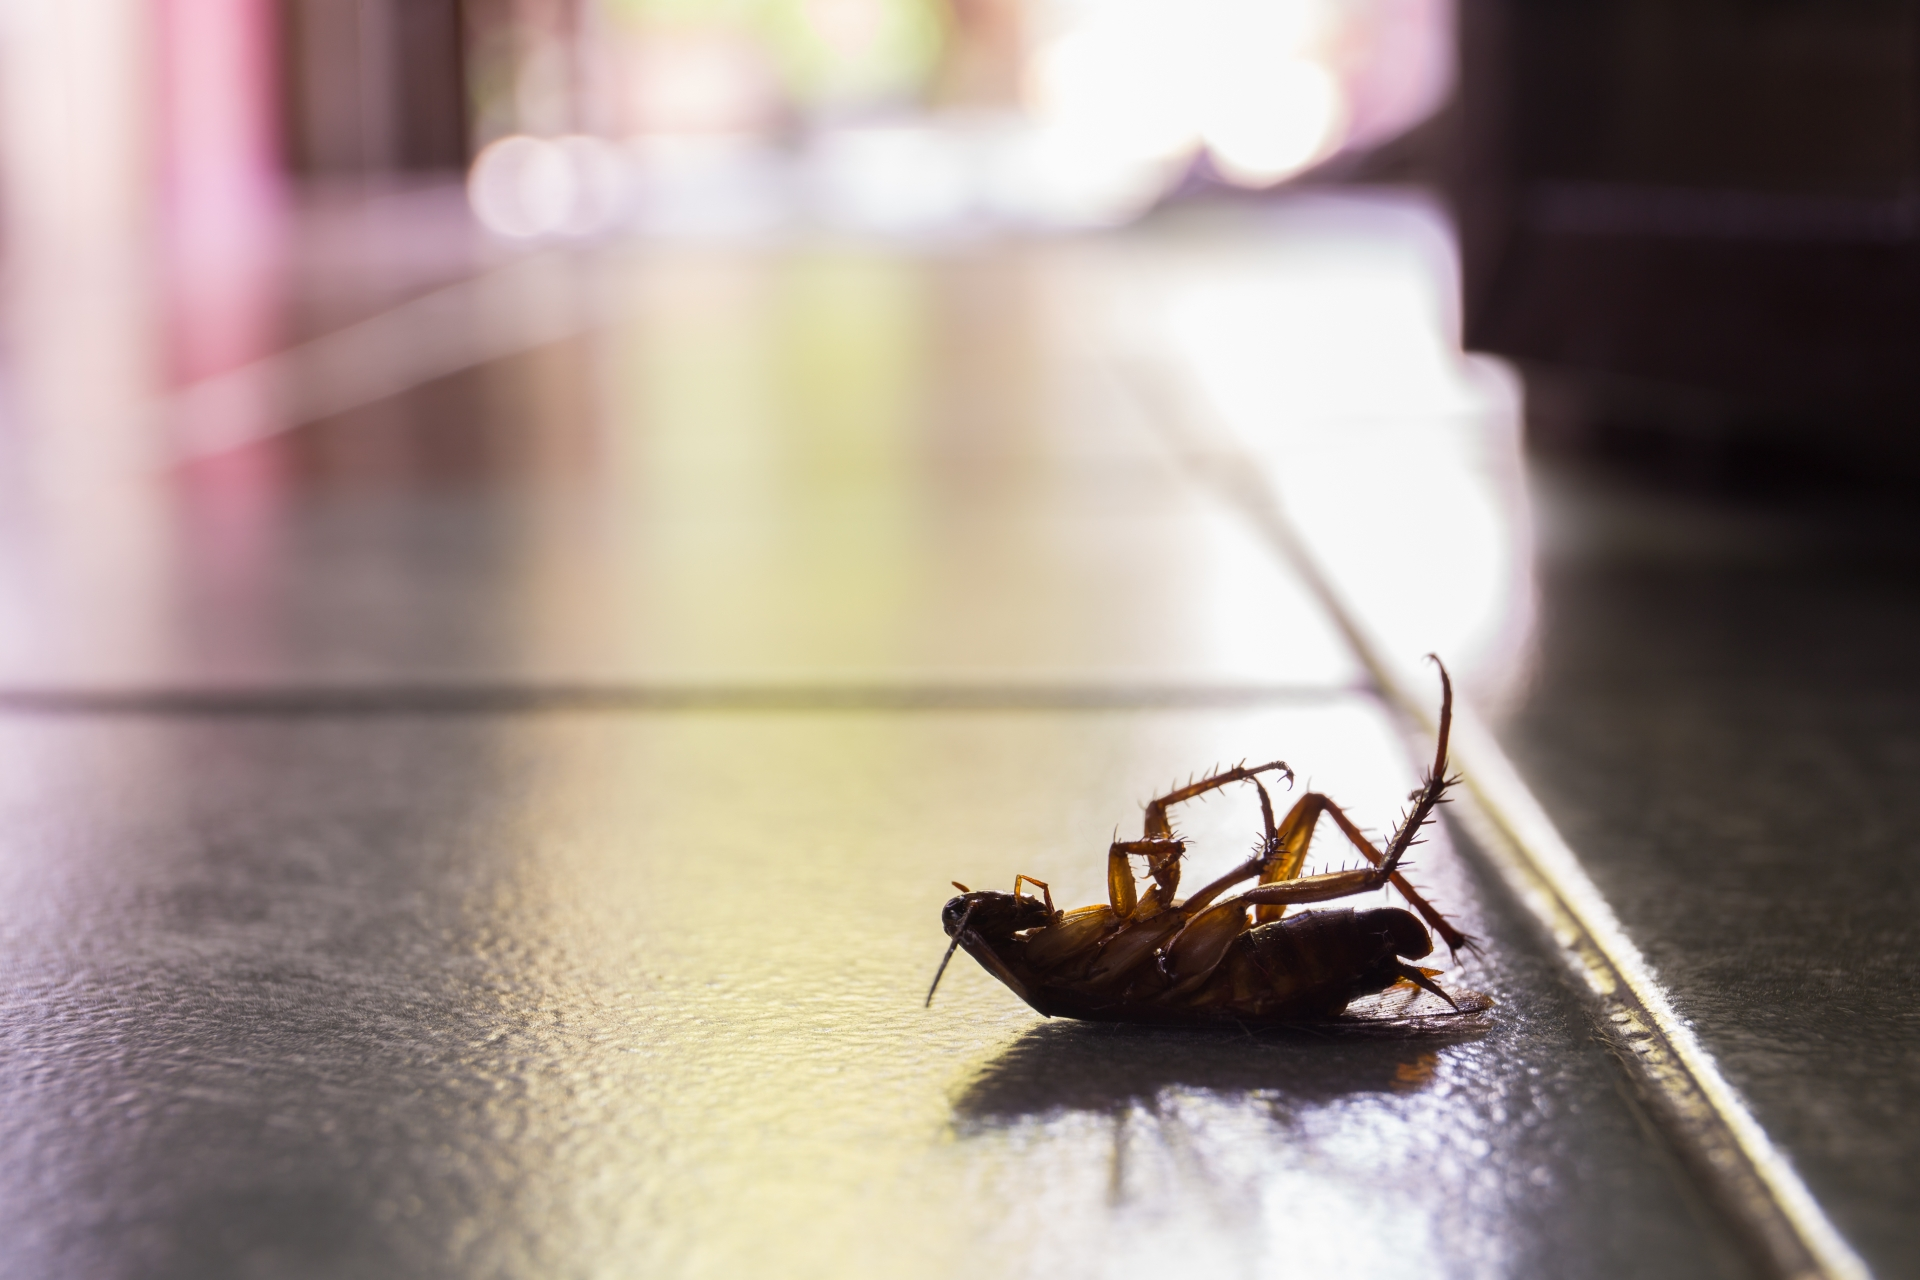 Cockroach Control, Pest Control in Redbridge, IG4. Call Now 020 8166 9746